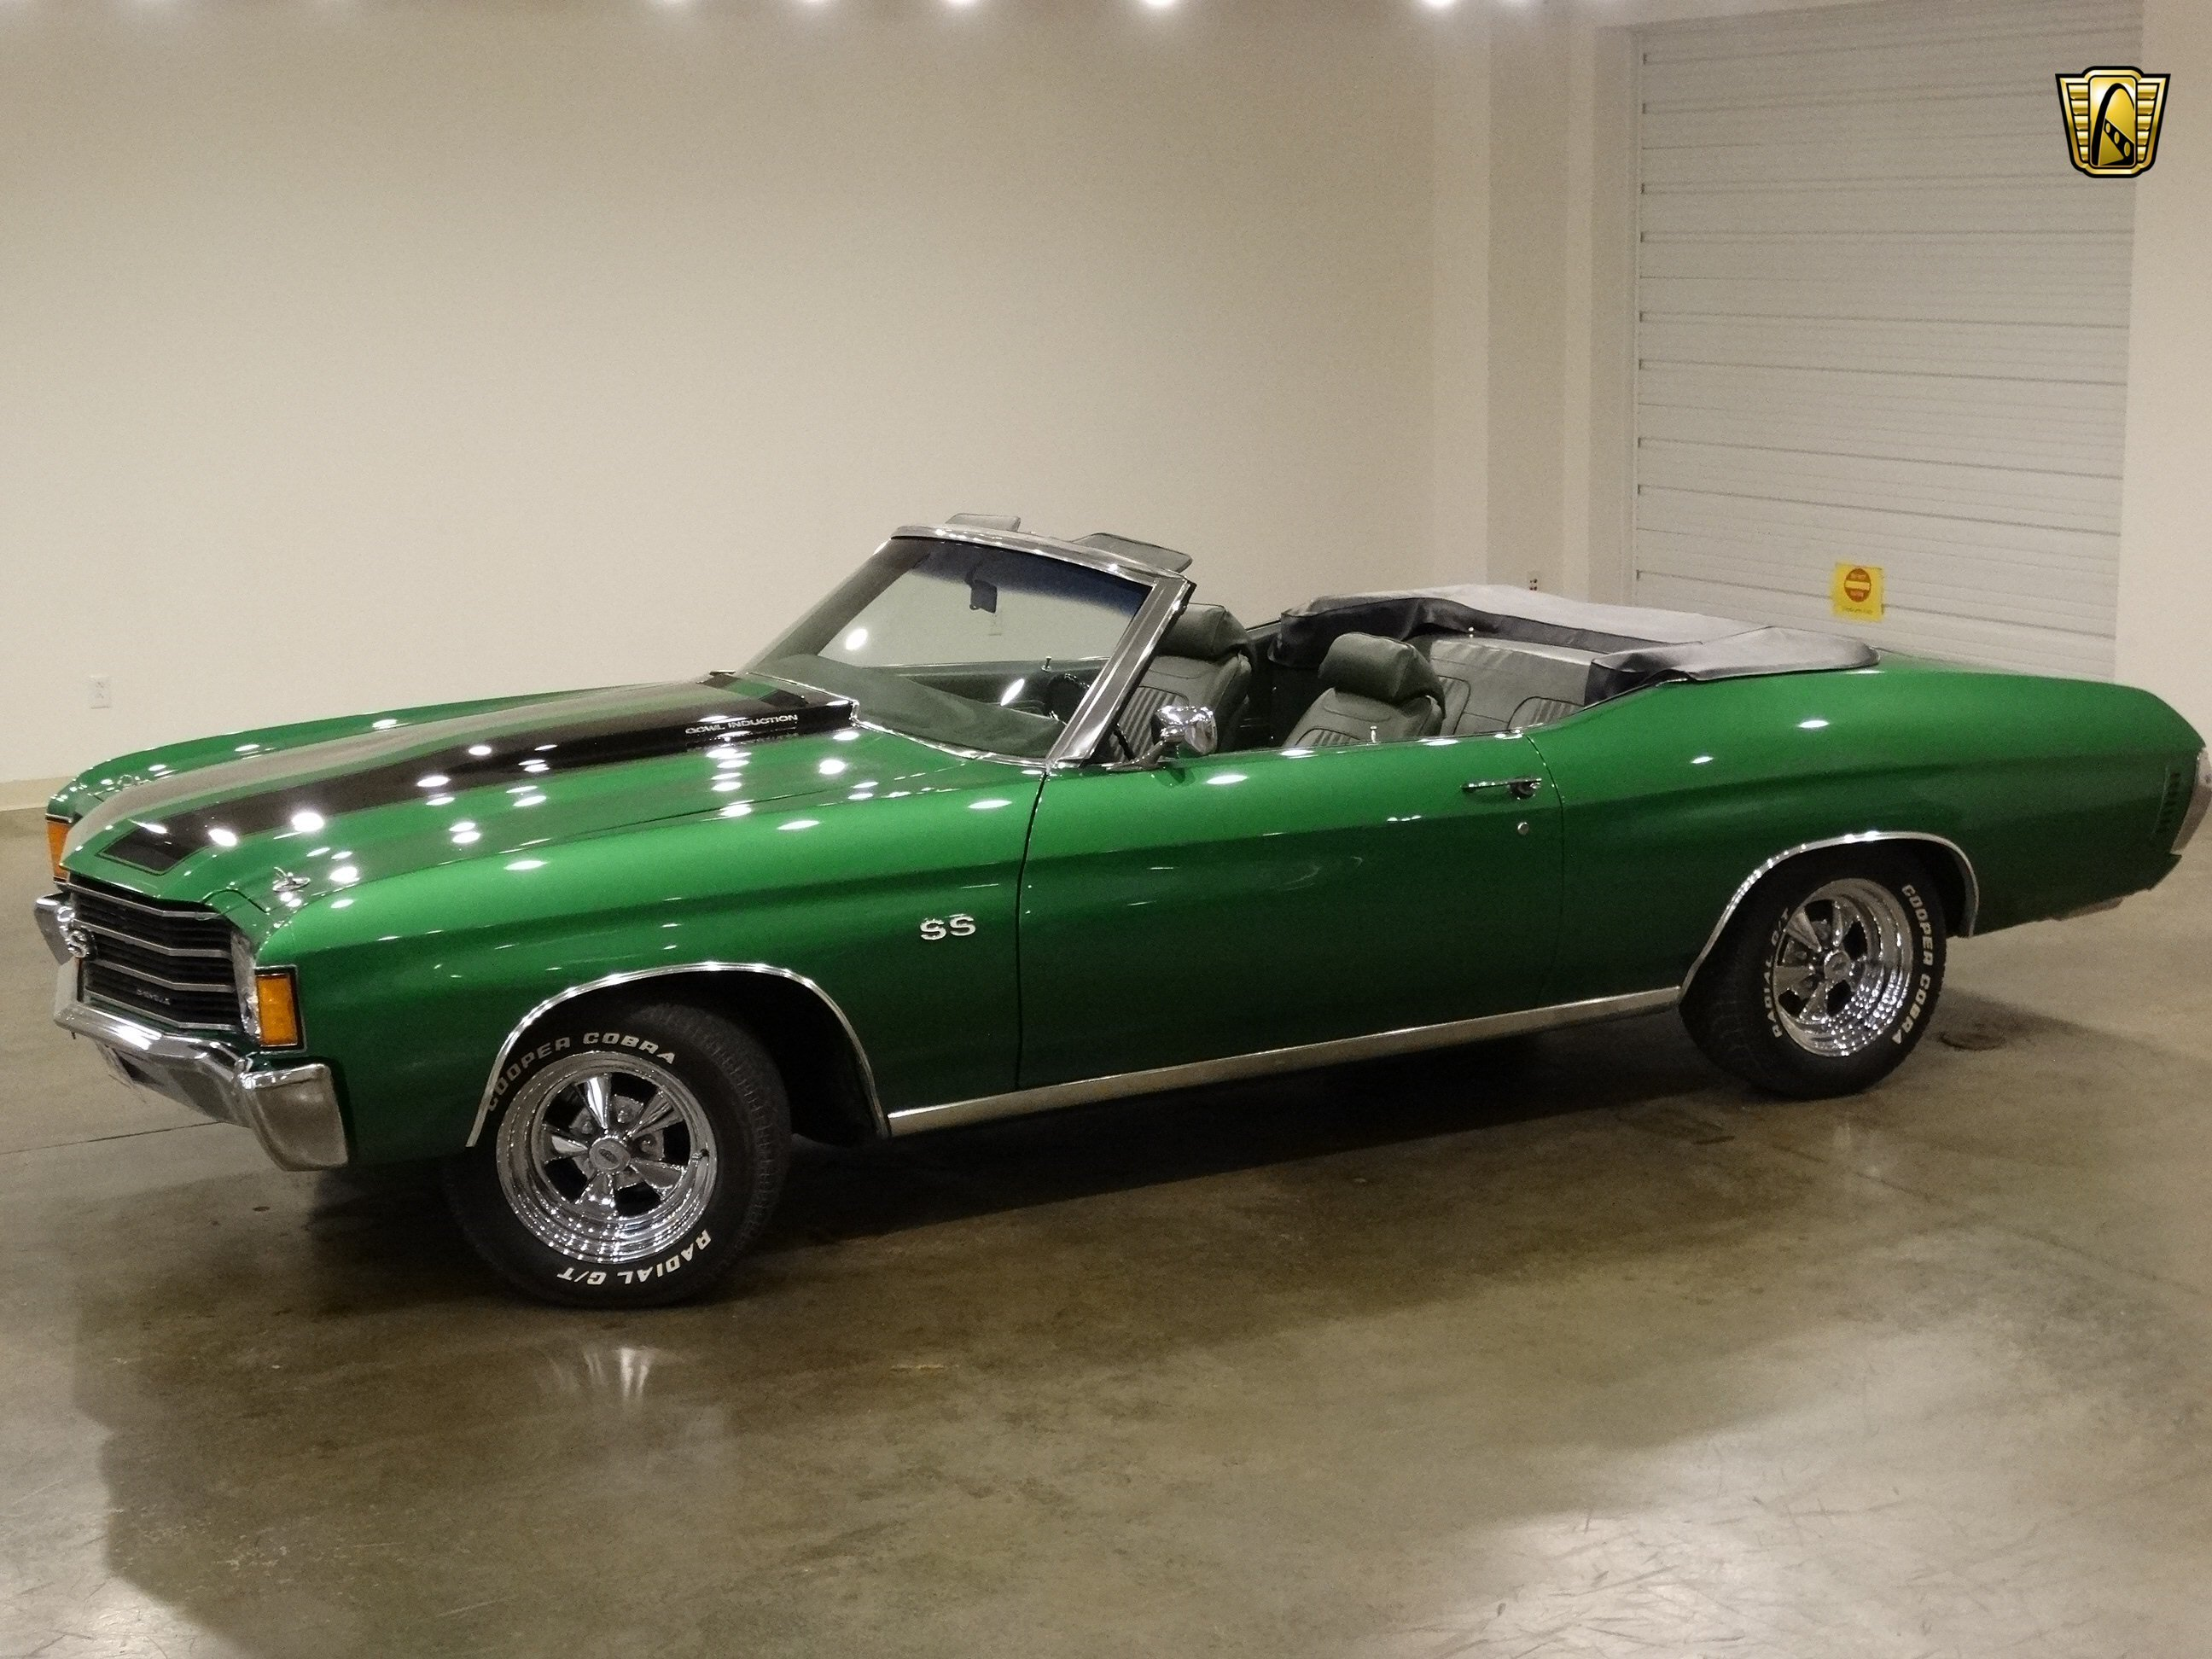 1972 Chevrolet Chevy Chevelle Convertible Green Classic